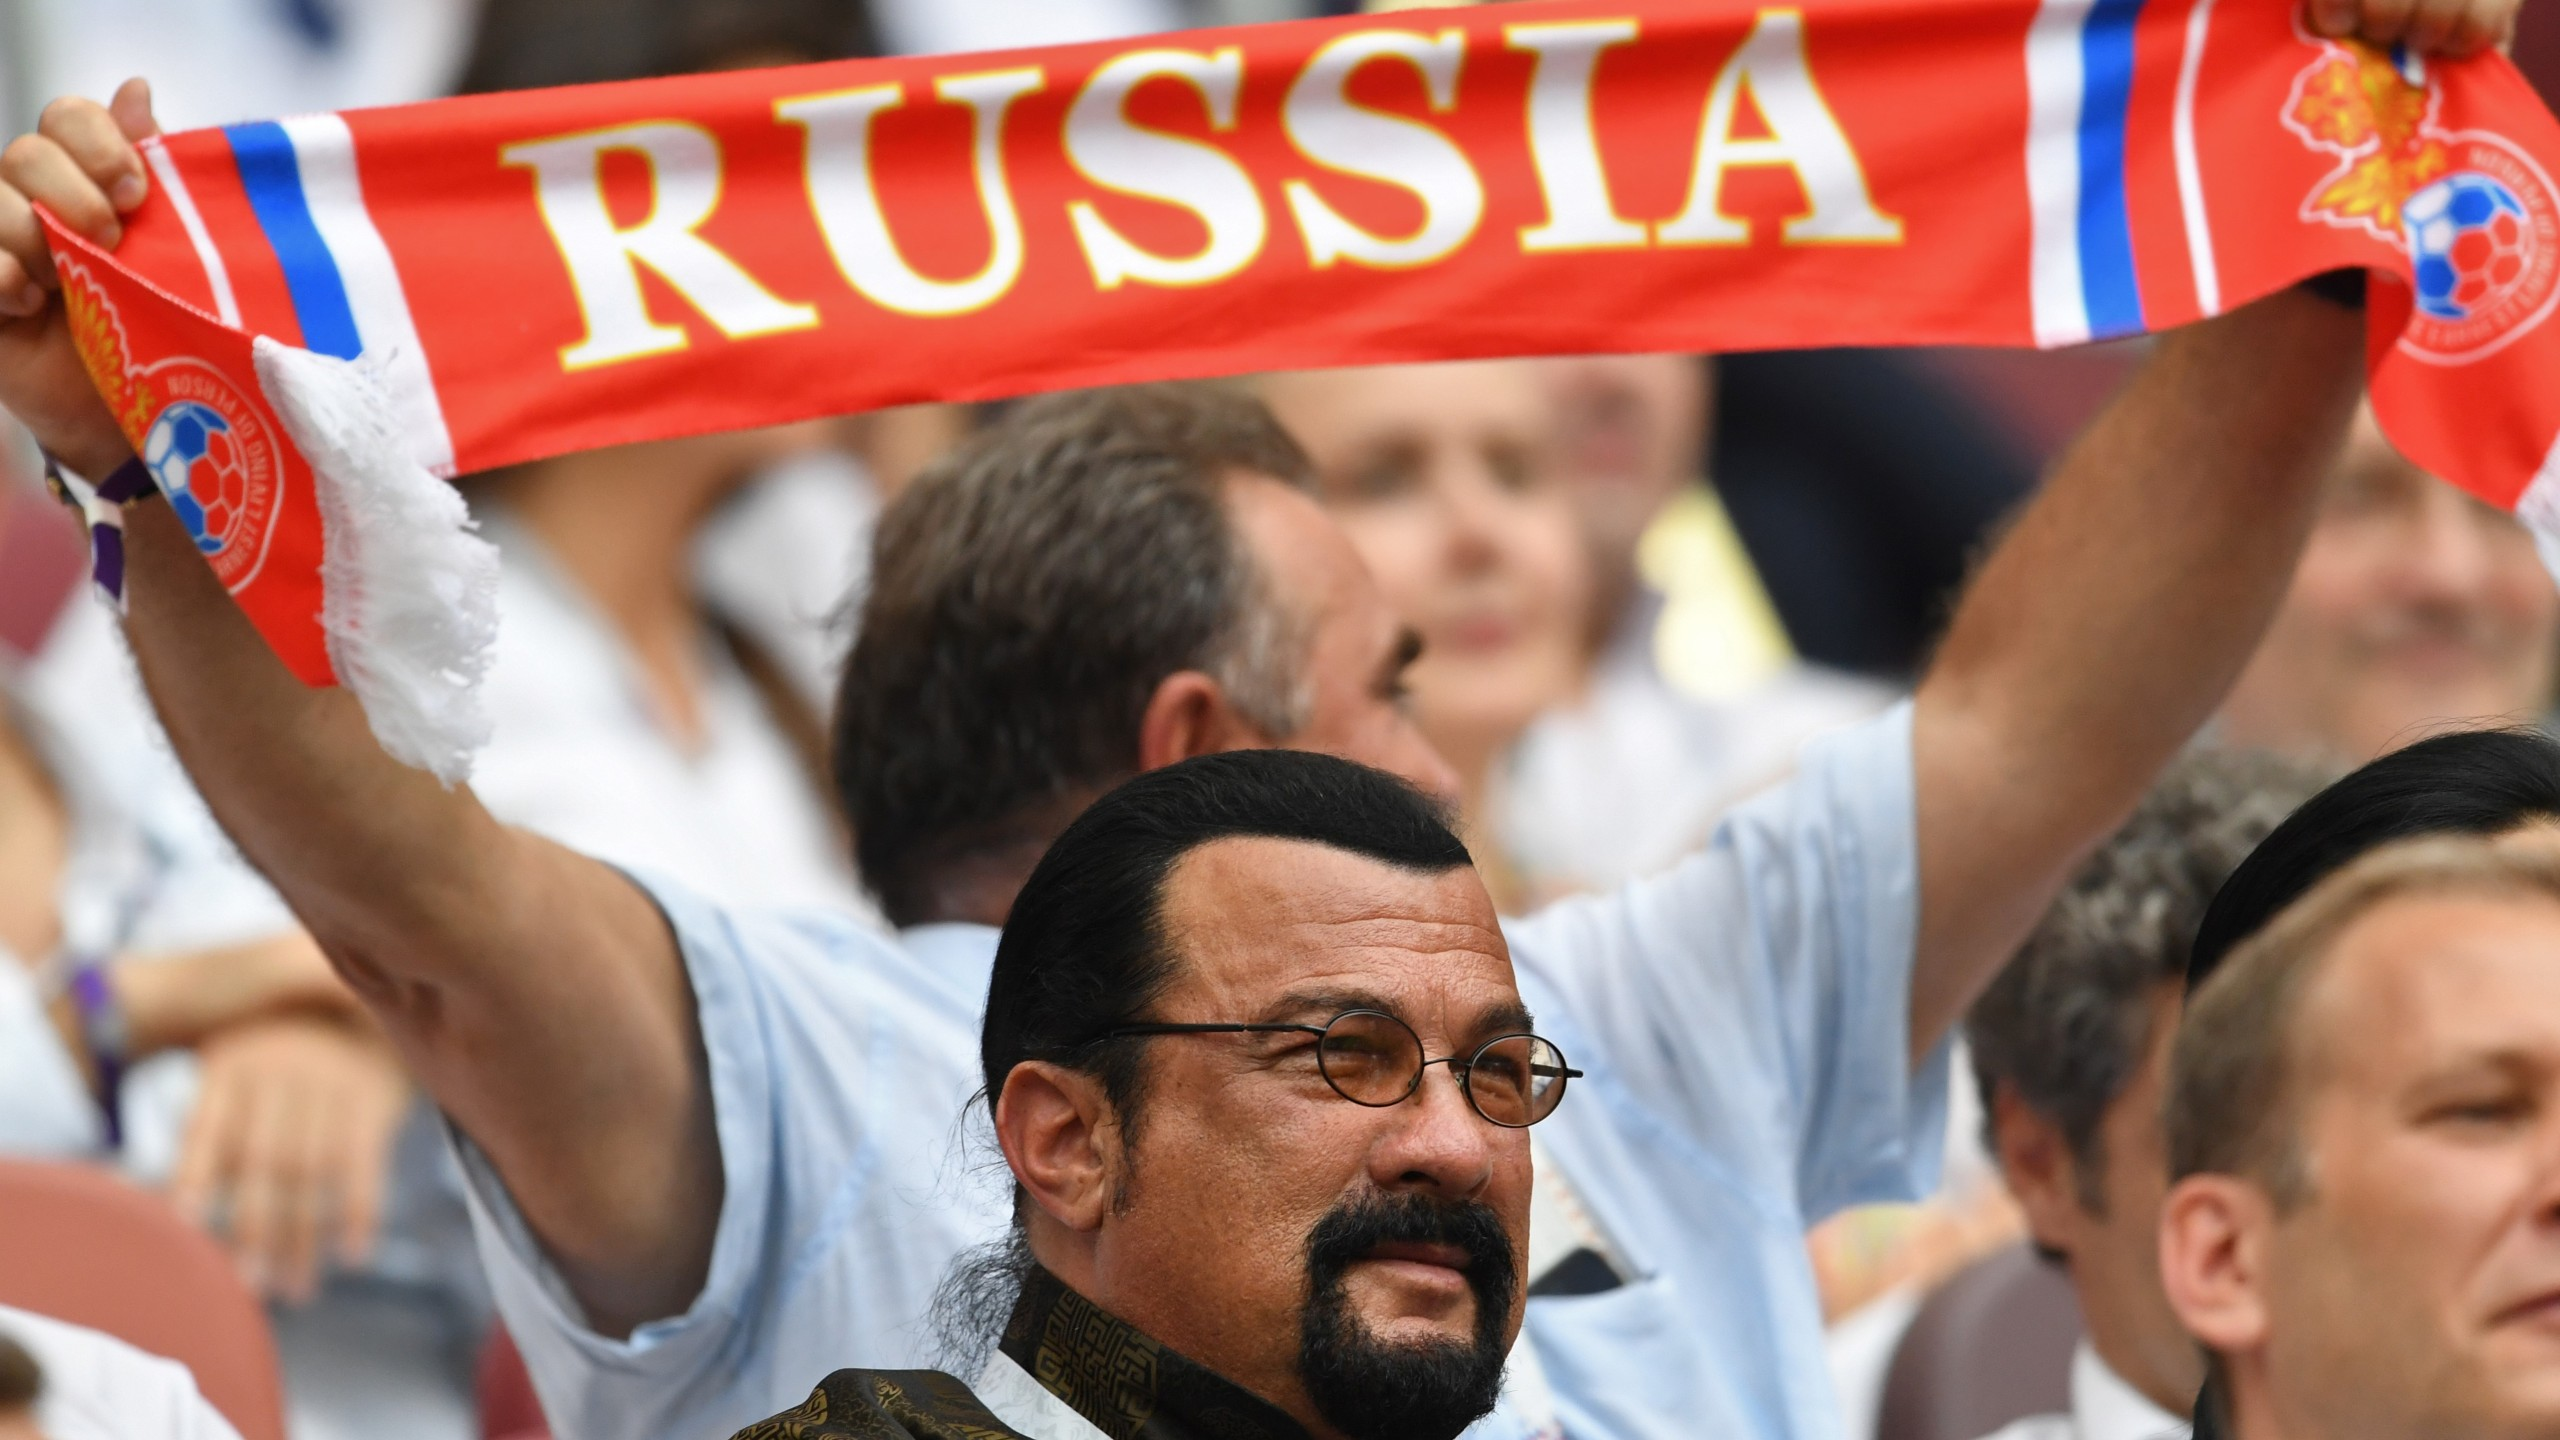 Steven Seagal attends the Russia 2018 World Cup final football match between France and Croatia at the Luzhniki Stadium in Moscow on July 15, 2018. (Credit: KIRILL KUDRYAVTSEV/AFP/Getty Images)